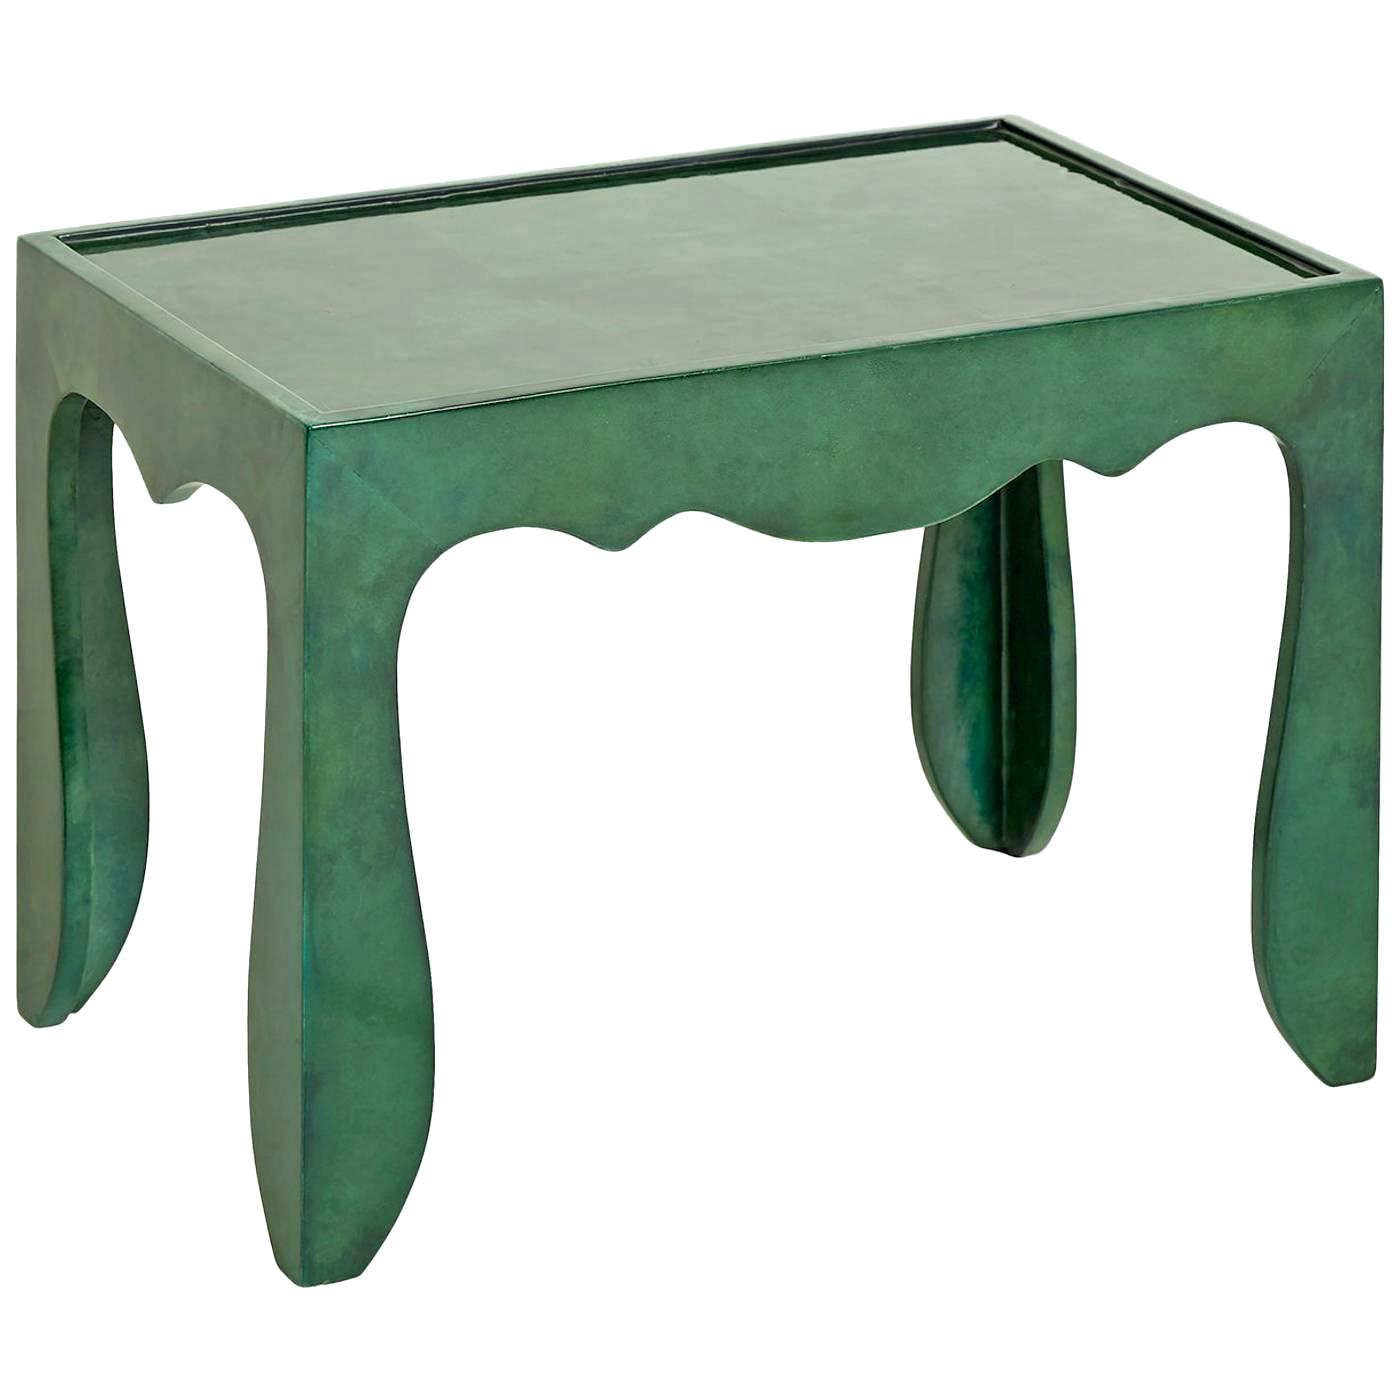 accent tables monarch table cappuccino hall console idmusik lacquered goatskin jade larger lamps with usb wood drum coffee tall stands small entry grey end pebble side teal chest